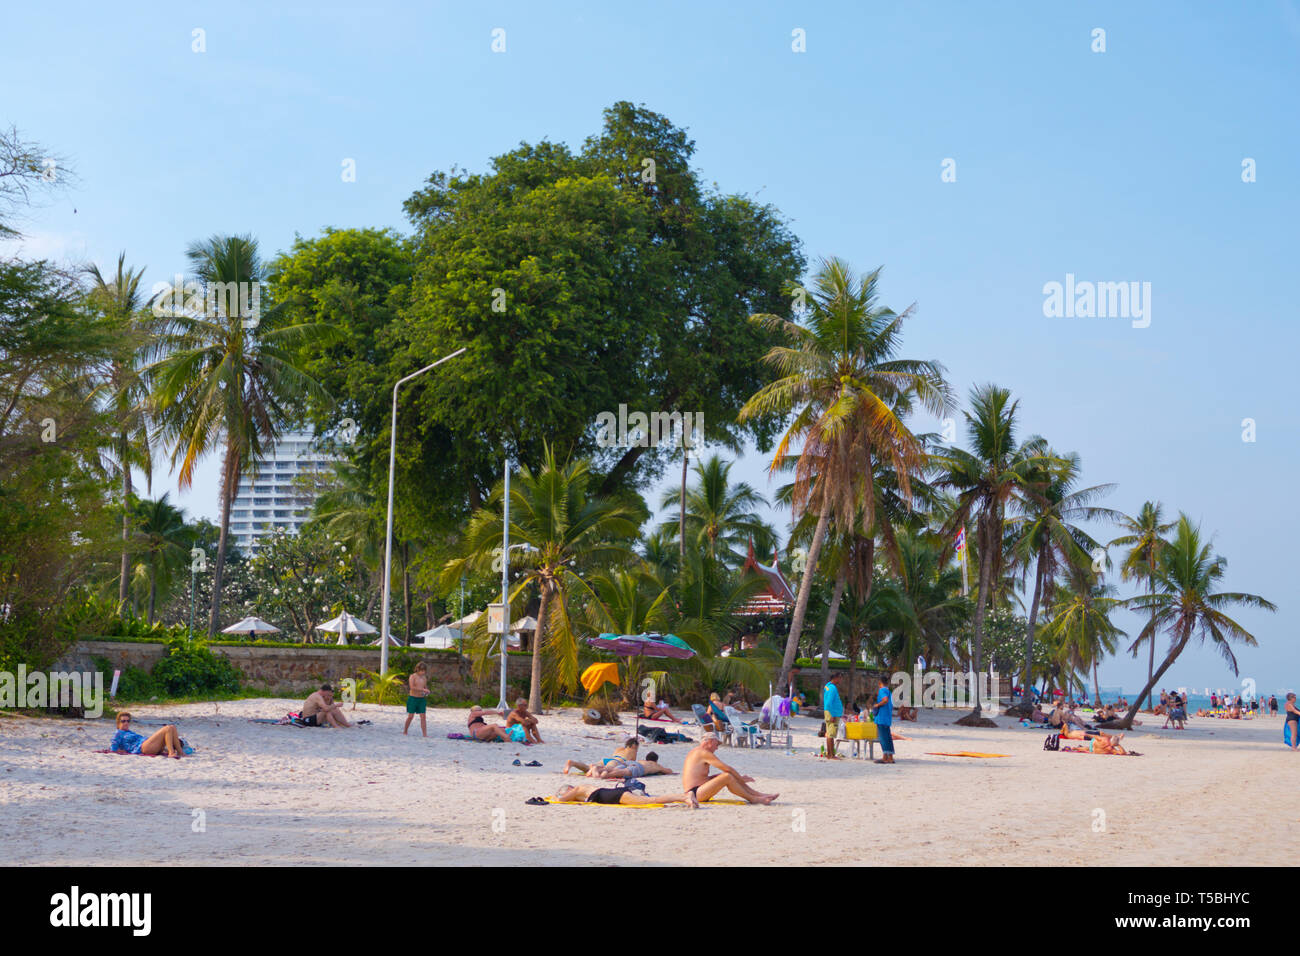 Beach, Hua Hin, Thailand Stock Photo